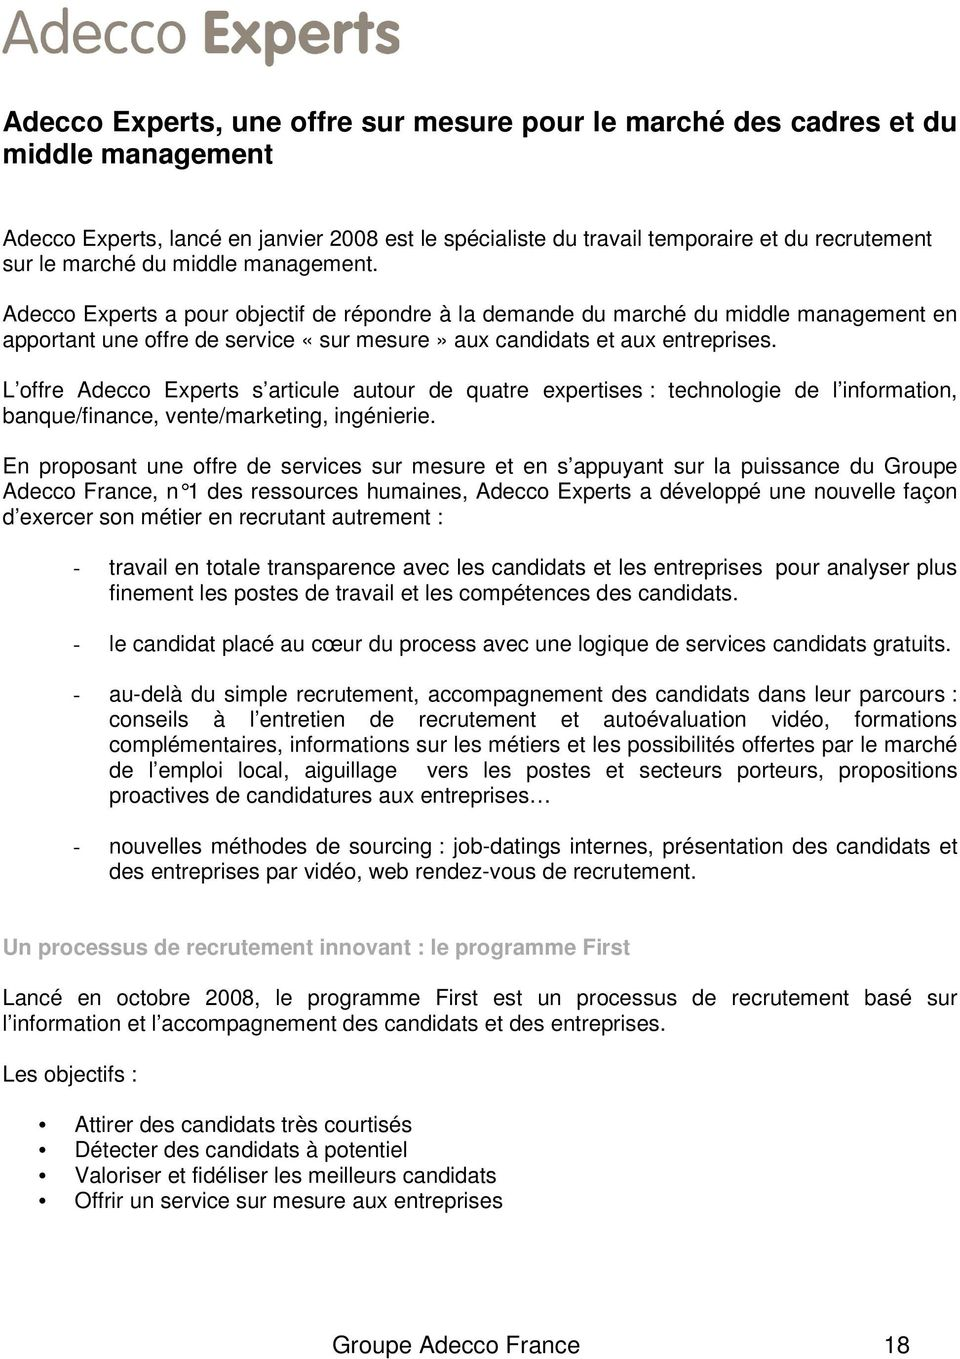 L offre Adecco Experts s articule autour de quatre expertises : technologie de l information, banque/finance, vente/marketing, ingénierie.